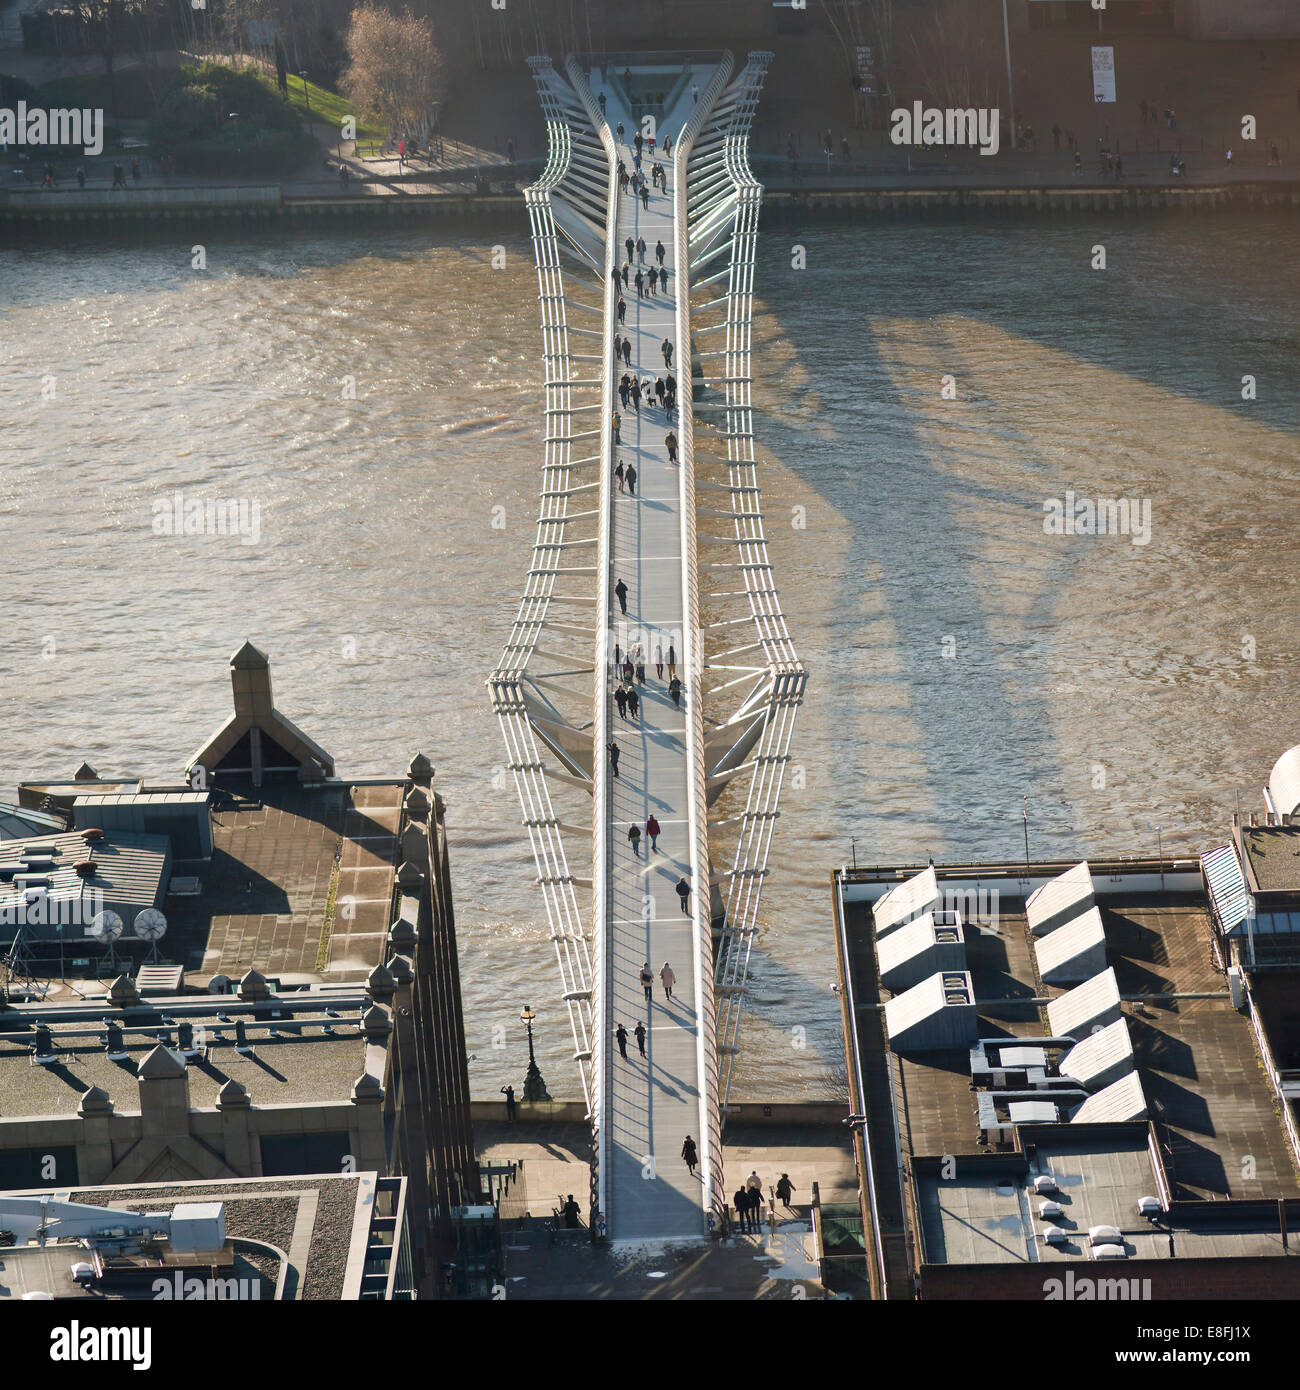 Aerial view of Millennium Bridge, London, England, UK - Stock Image